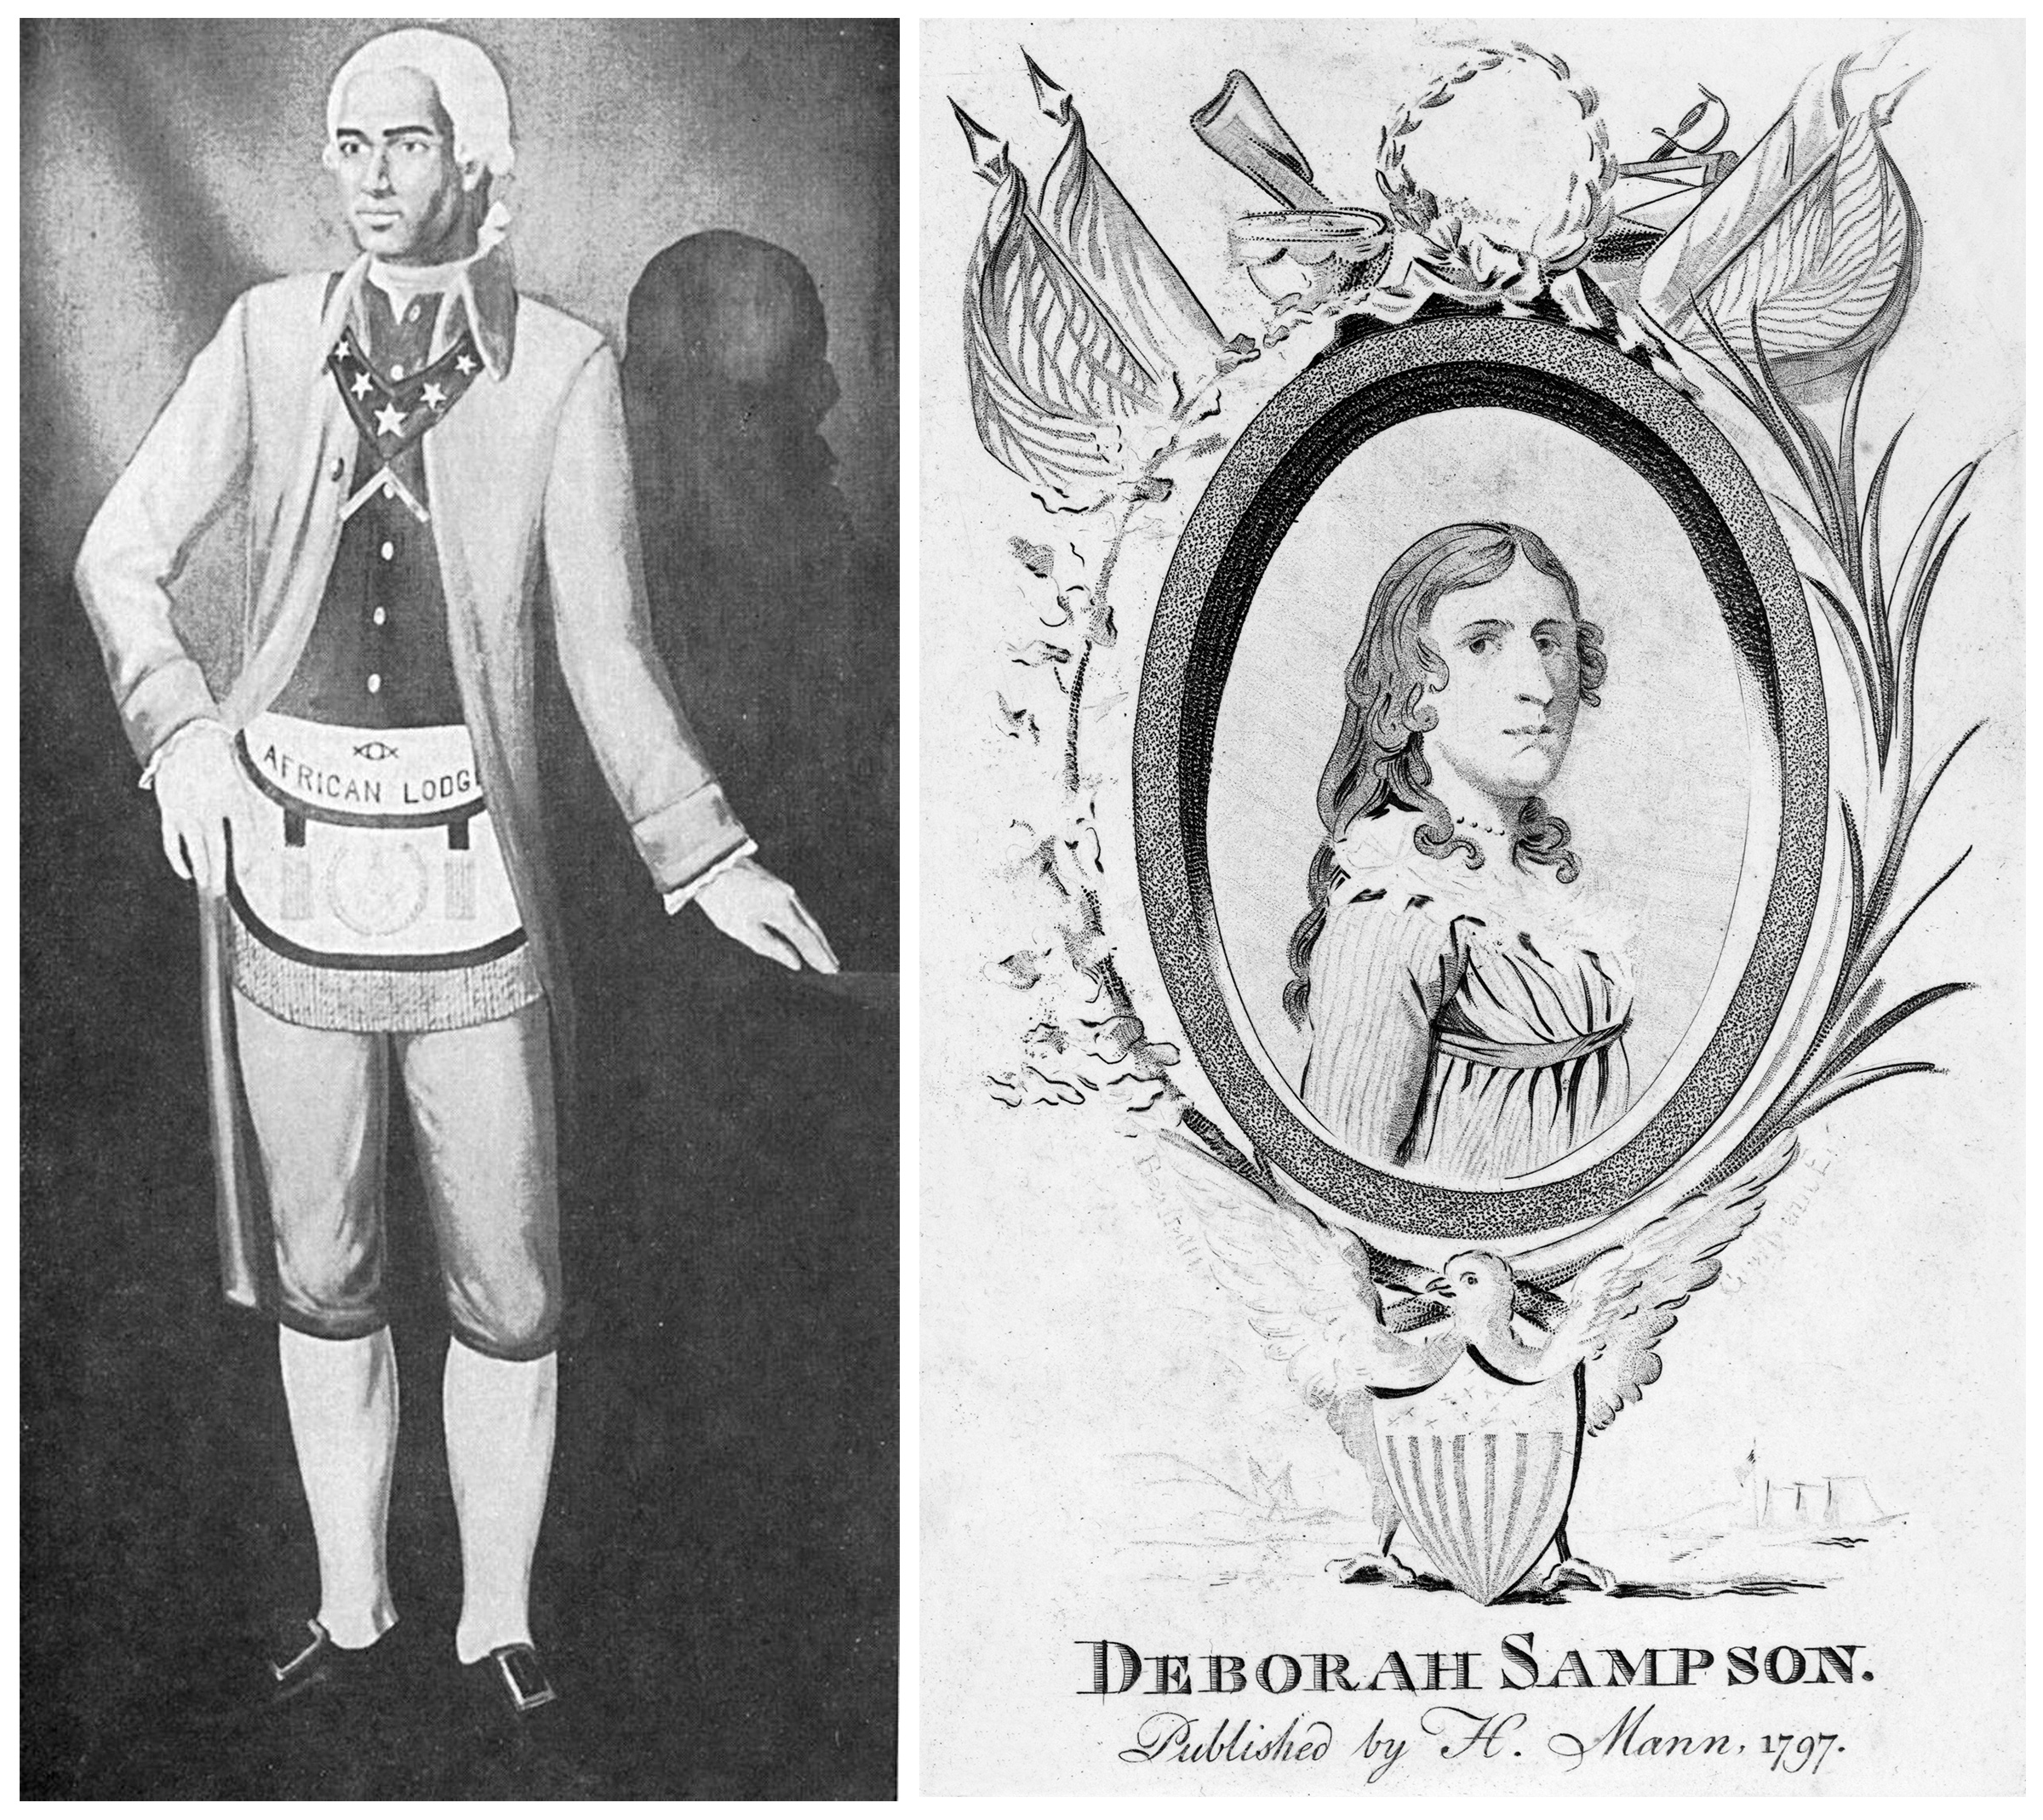 From left: An undated portrait of Prince Hall; an illustration of Deborah Sampson circa 1797